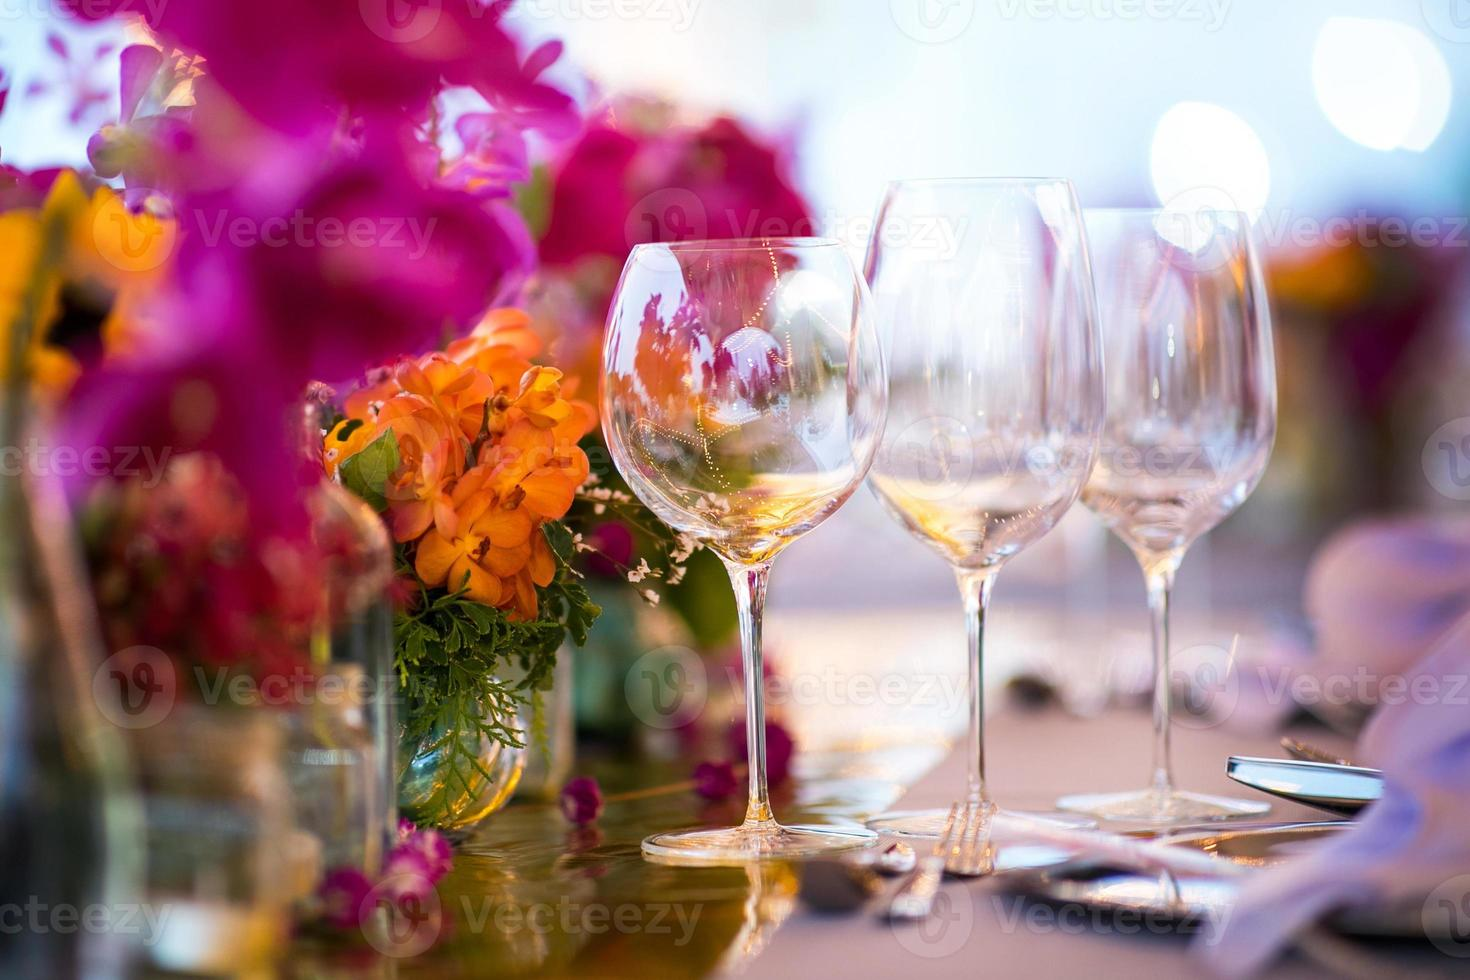 Table setting for a wedding or dinner event, with flowers photo